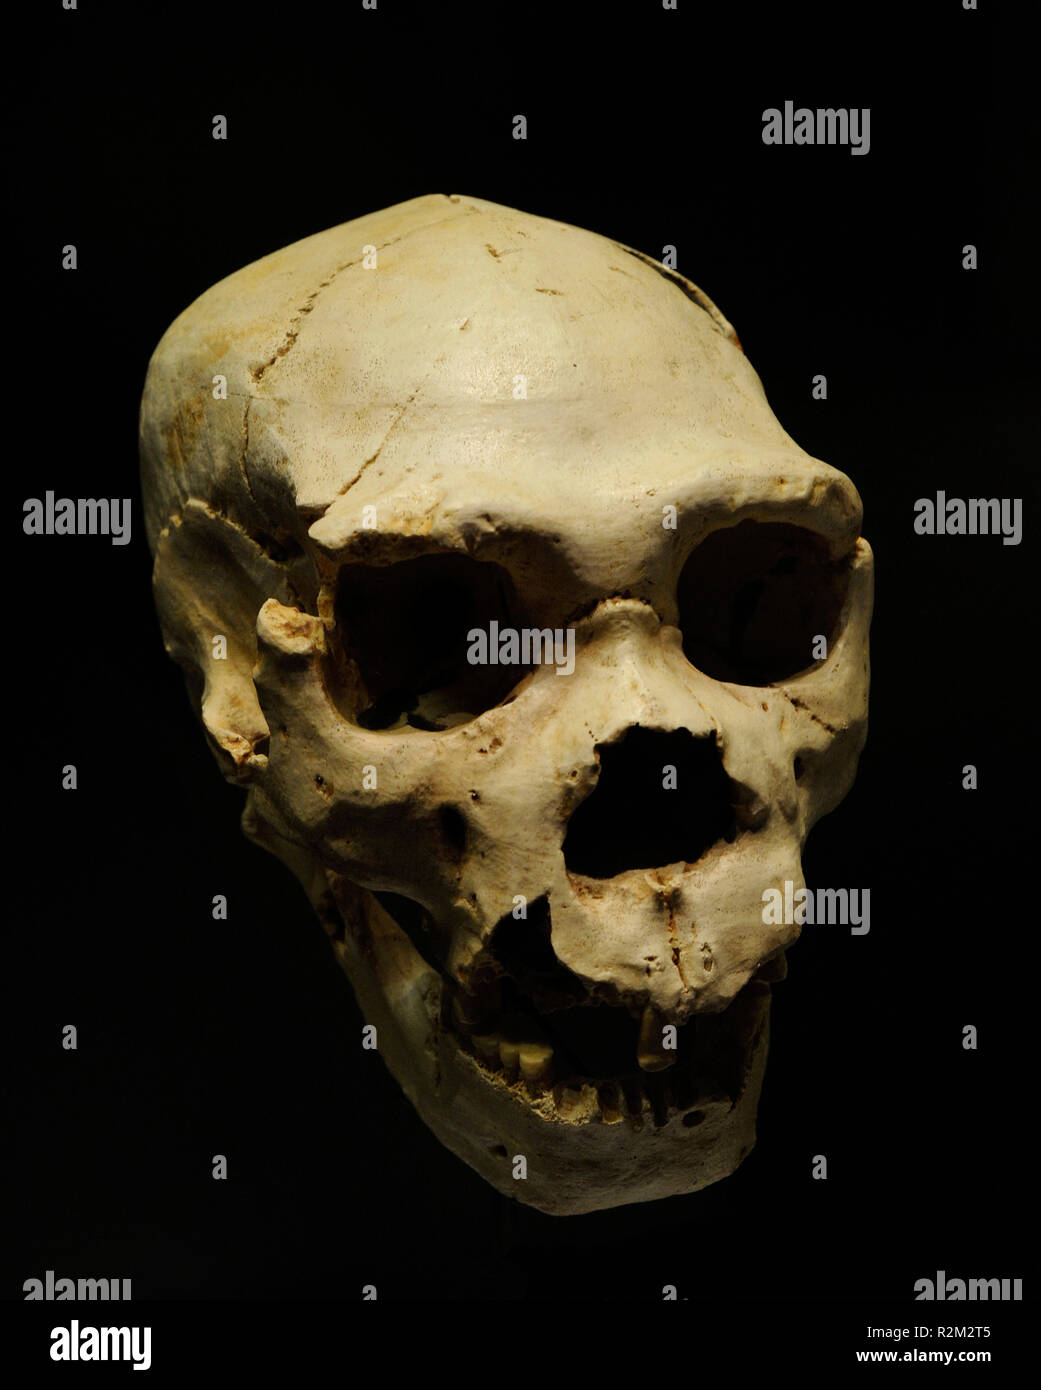 Homo heidelbergensis. Skull 5 and mandible AT-888 of an adult individual, called Miguelon. Found in the Sima de los Huesos, Atapuerca (province of Burgos, Castile and Leon). National Archaeological Museum. Madrid. Spain. - Stock Image